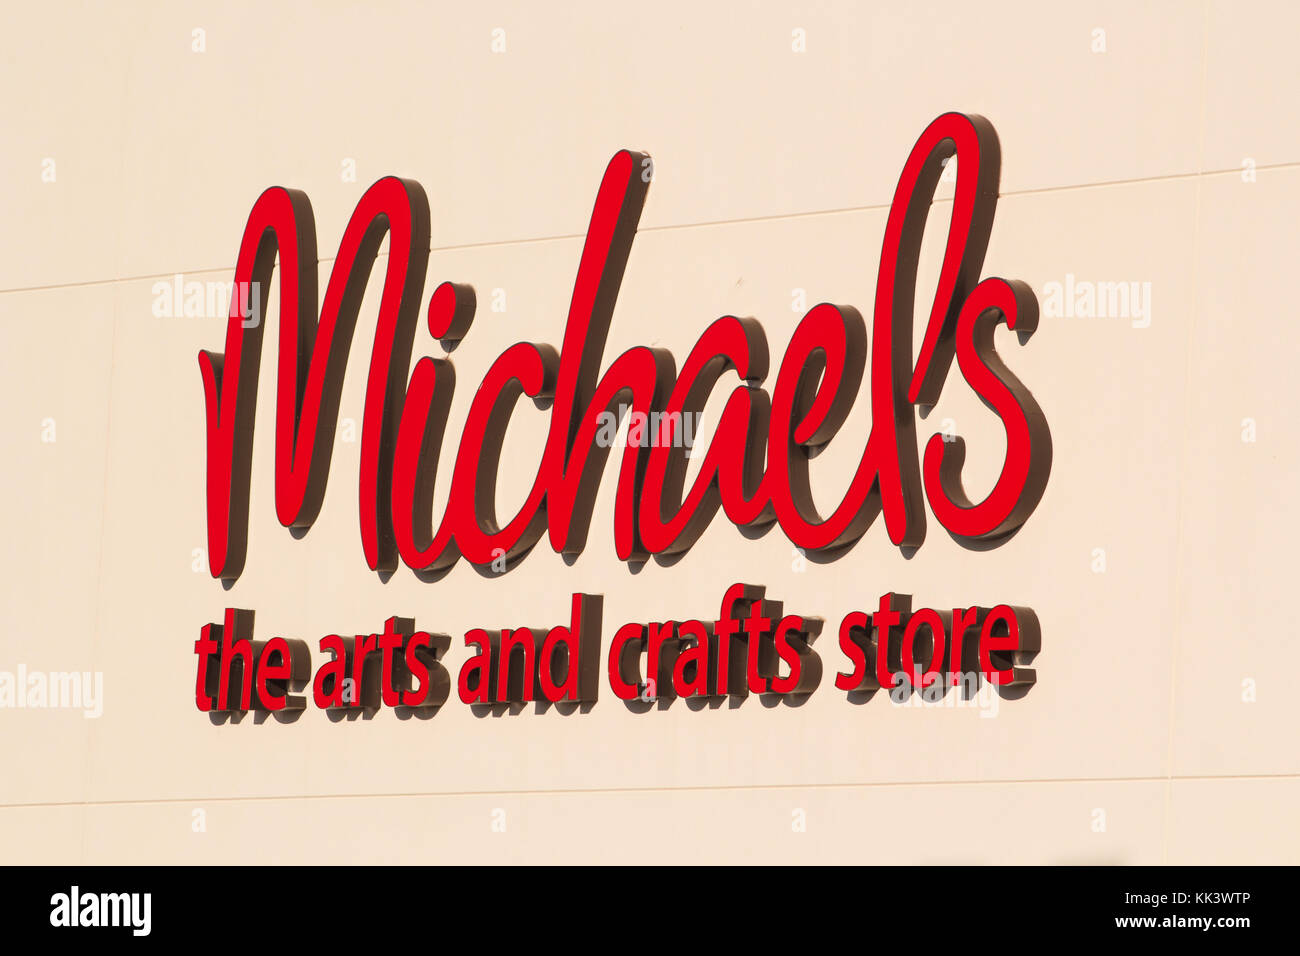 Michaels Is A Popular Retail Chain Selling A Variety Of Arts And